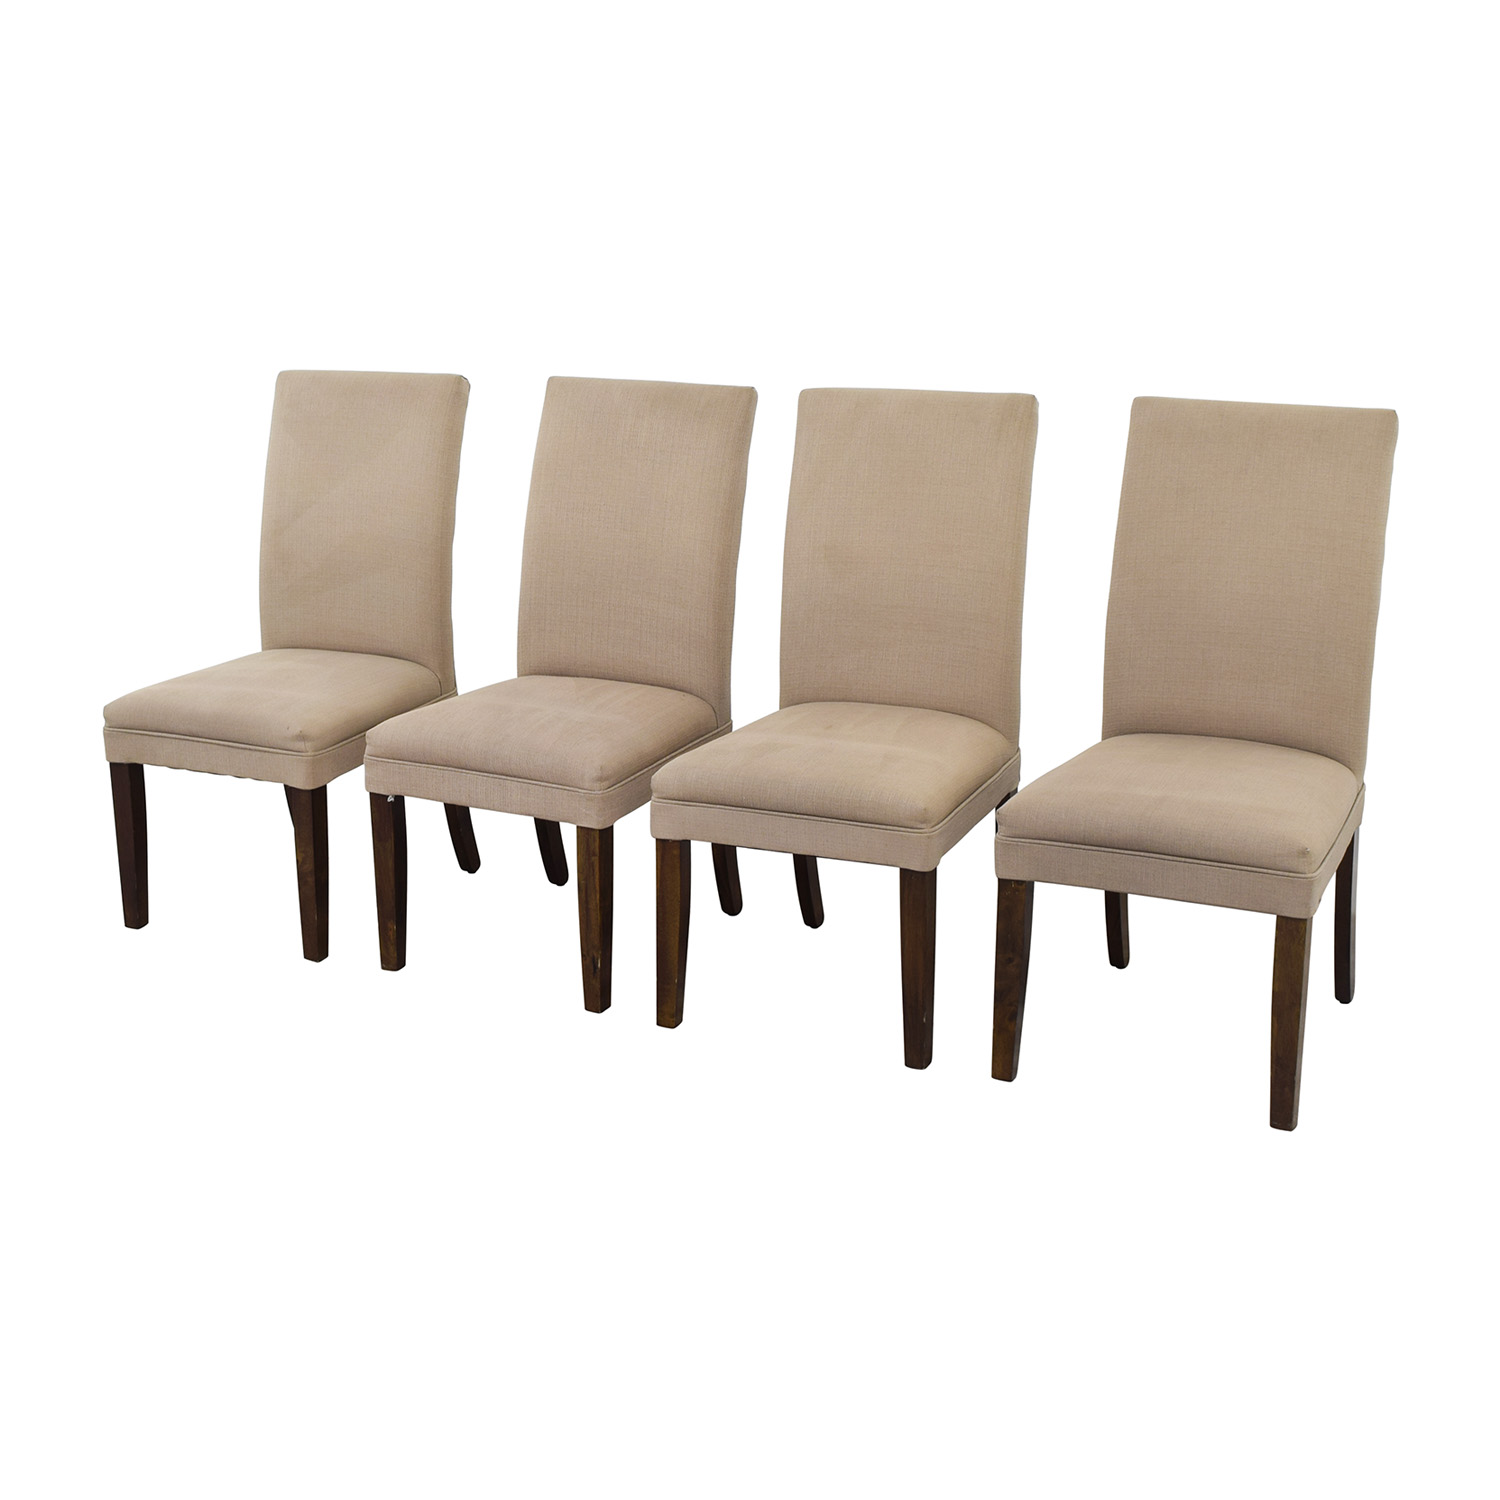 buy Tan Dining Room Chairs Chairs